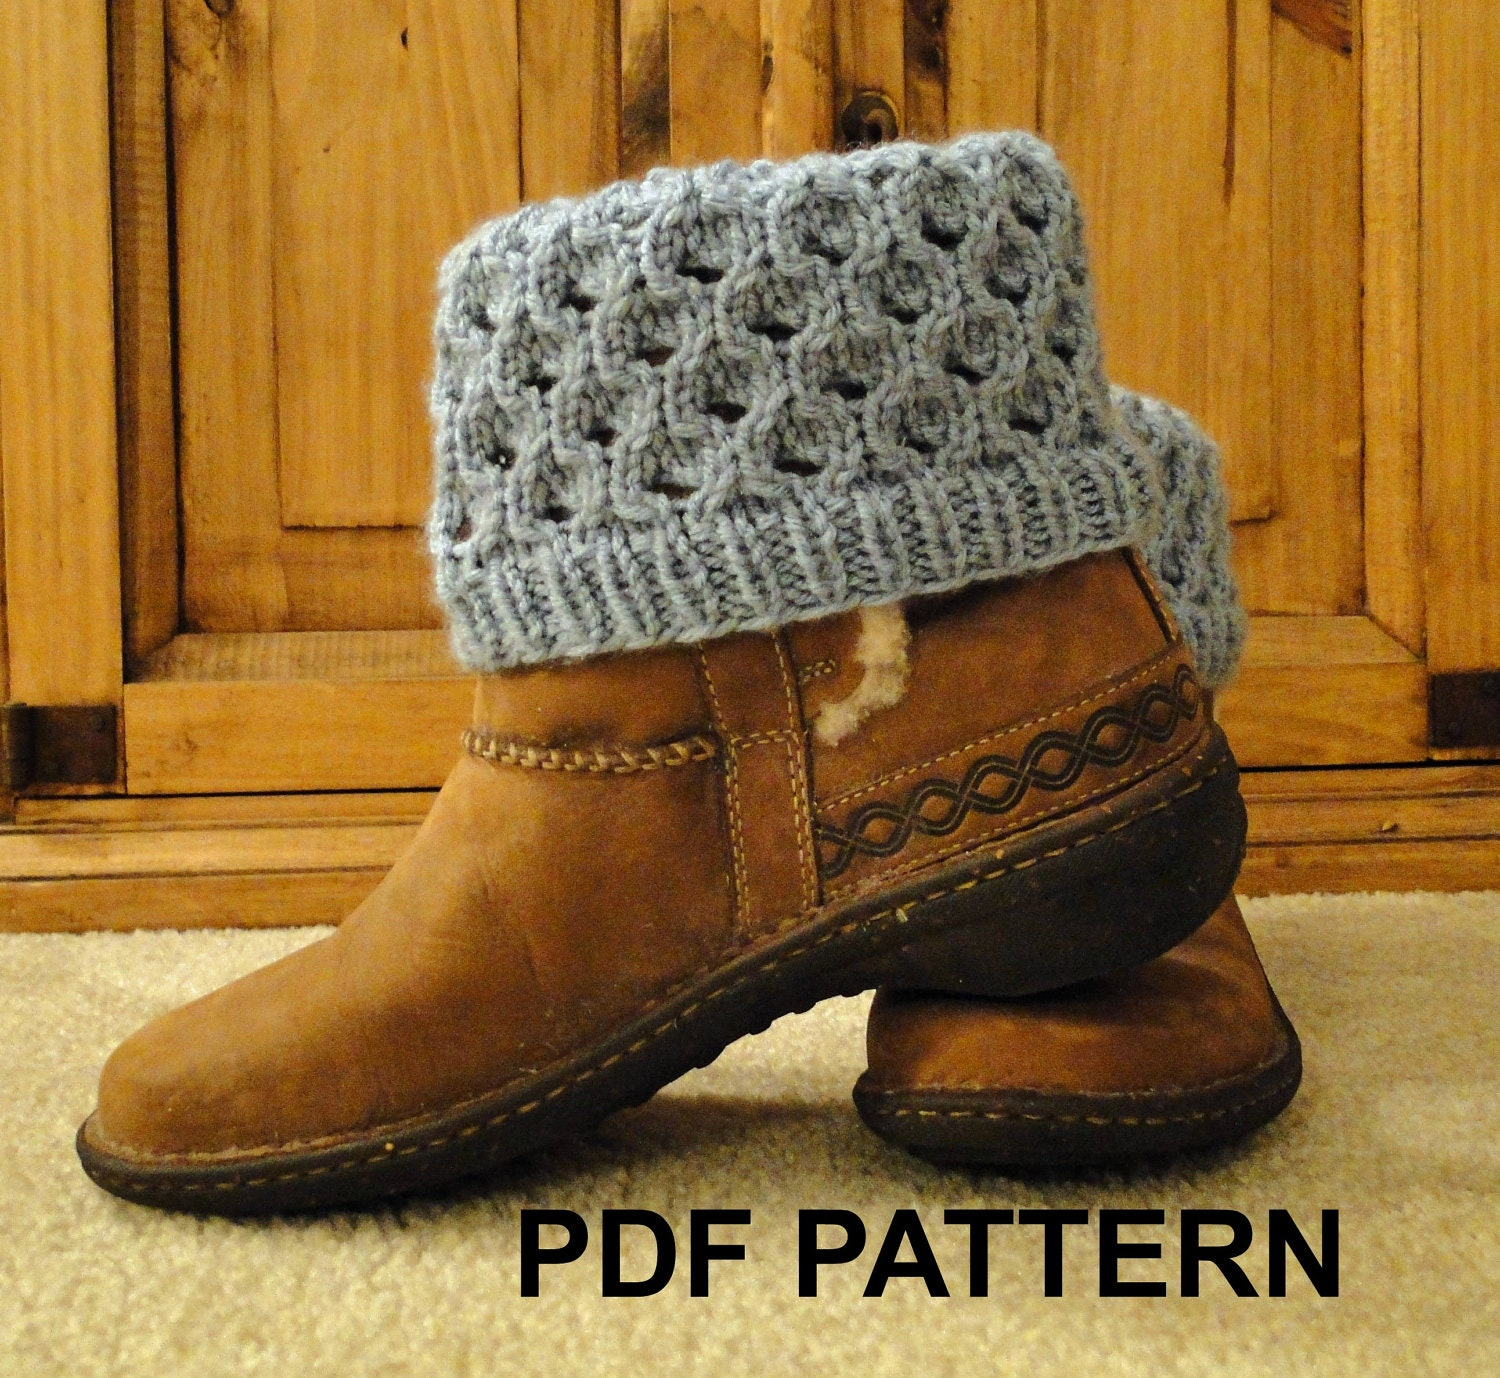 Knitted Boot Cuff Pattern : PDF Pattern Knit Boot Cuff Leg Warmers for by karensstitchnitch